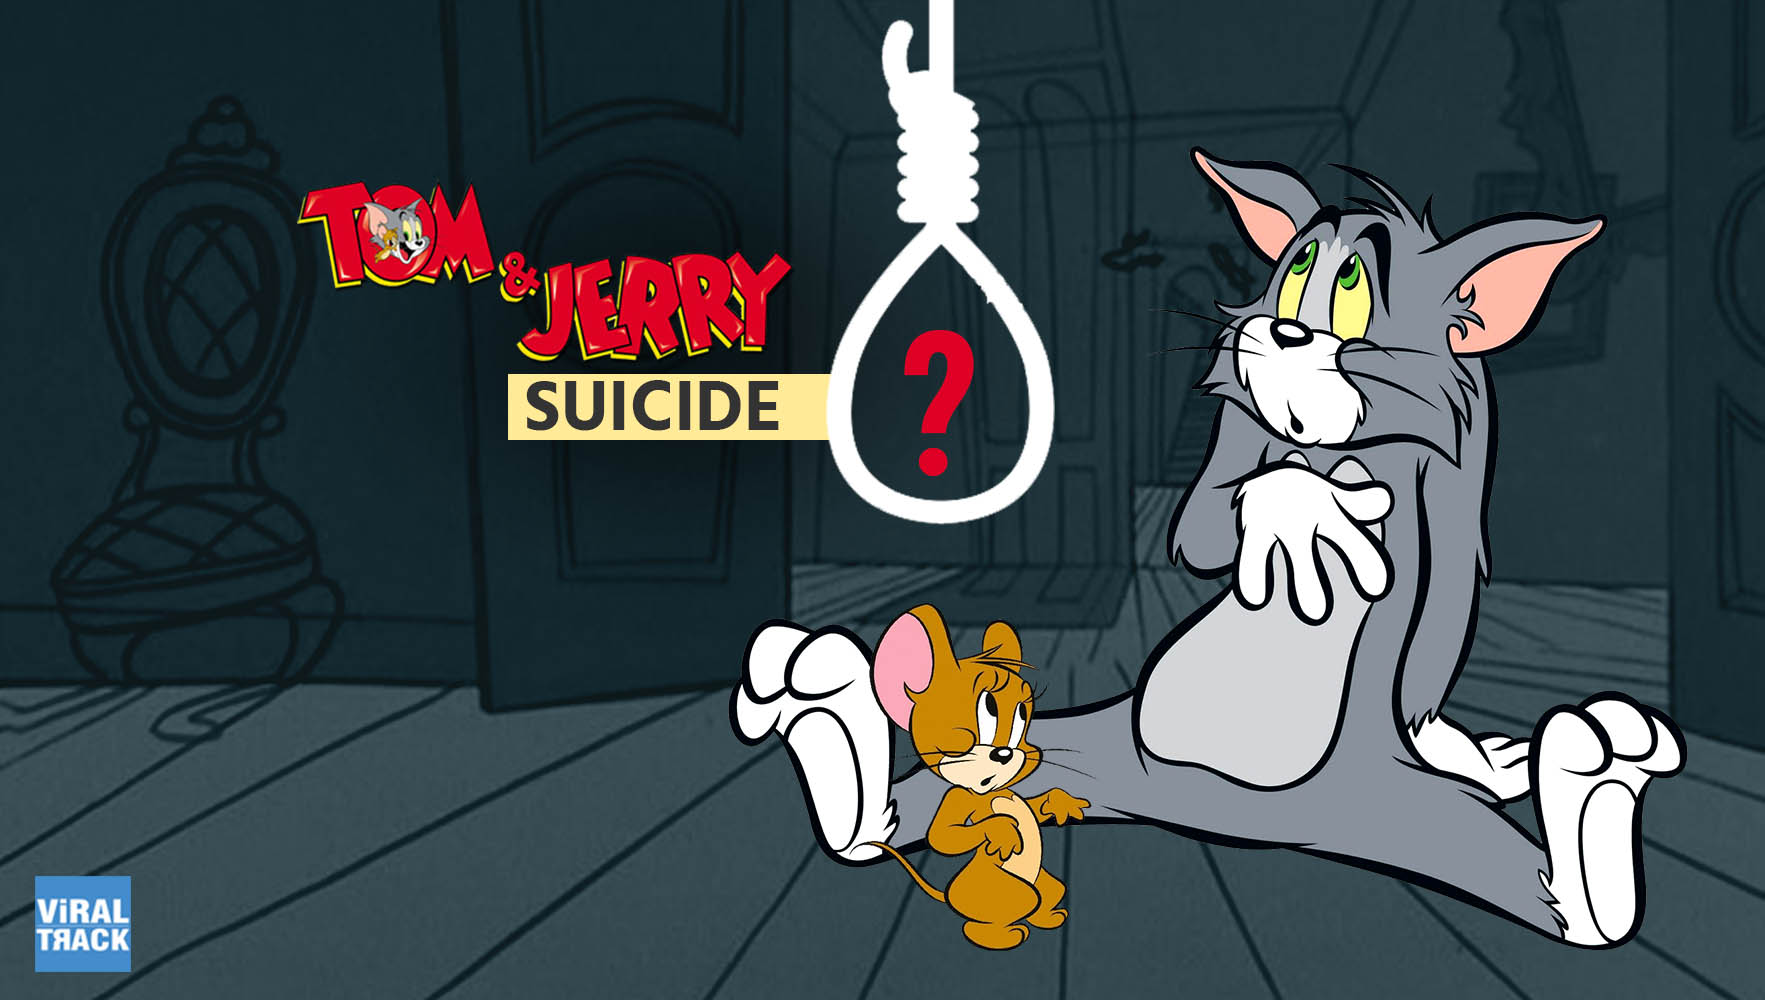 Tom and Jerry Suicide reality